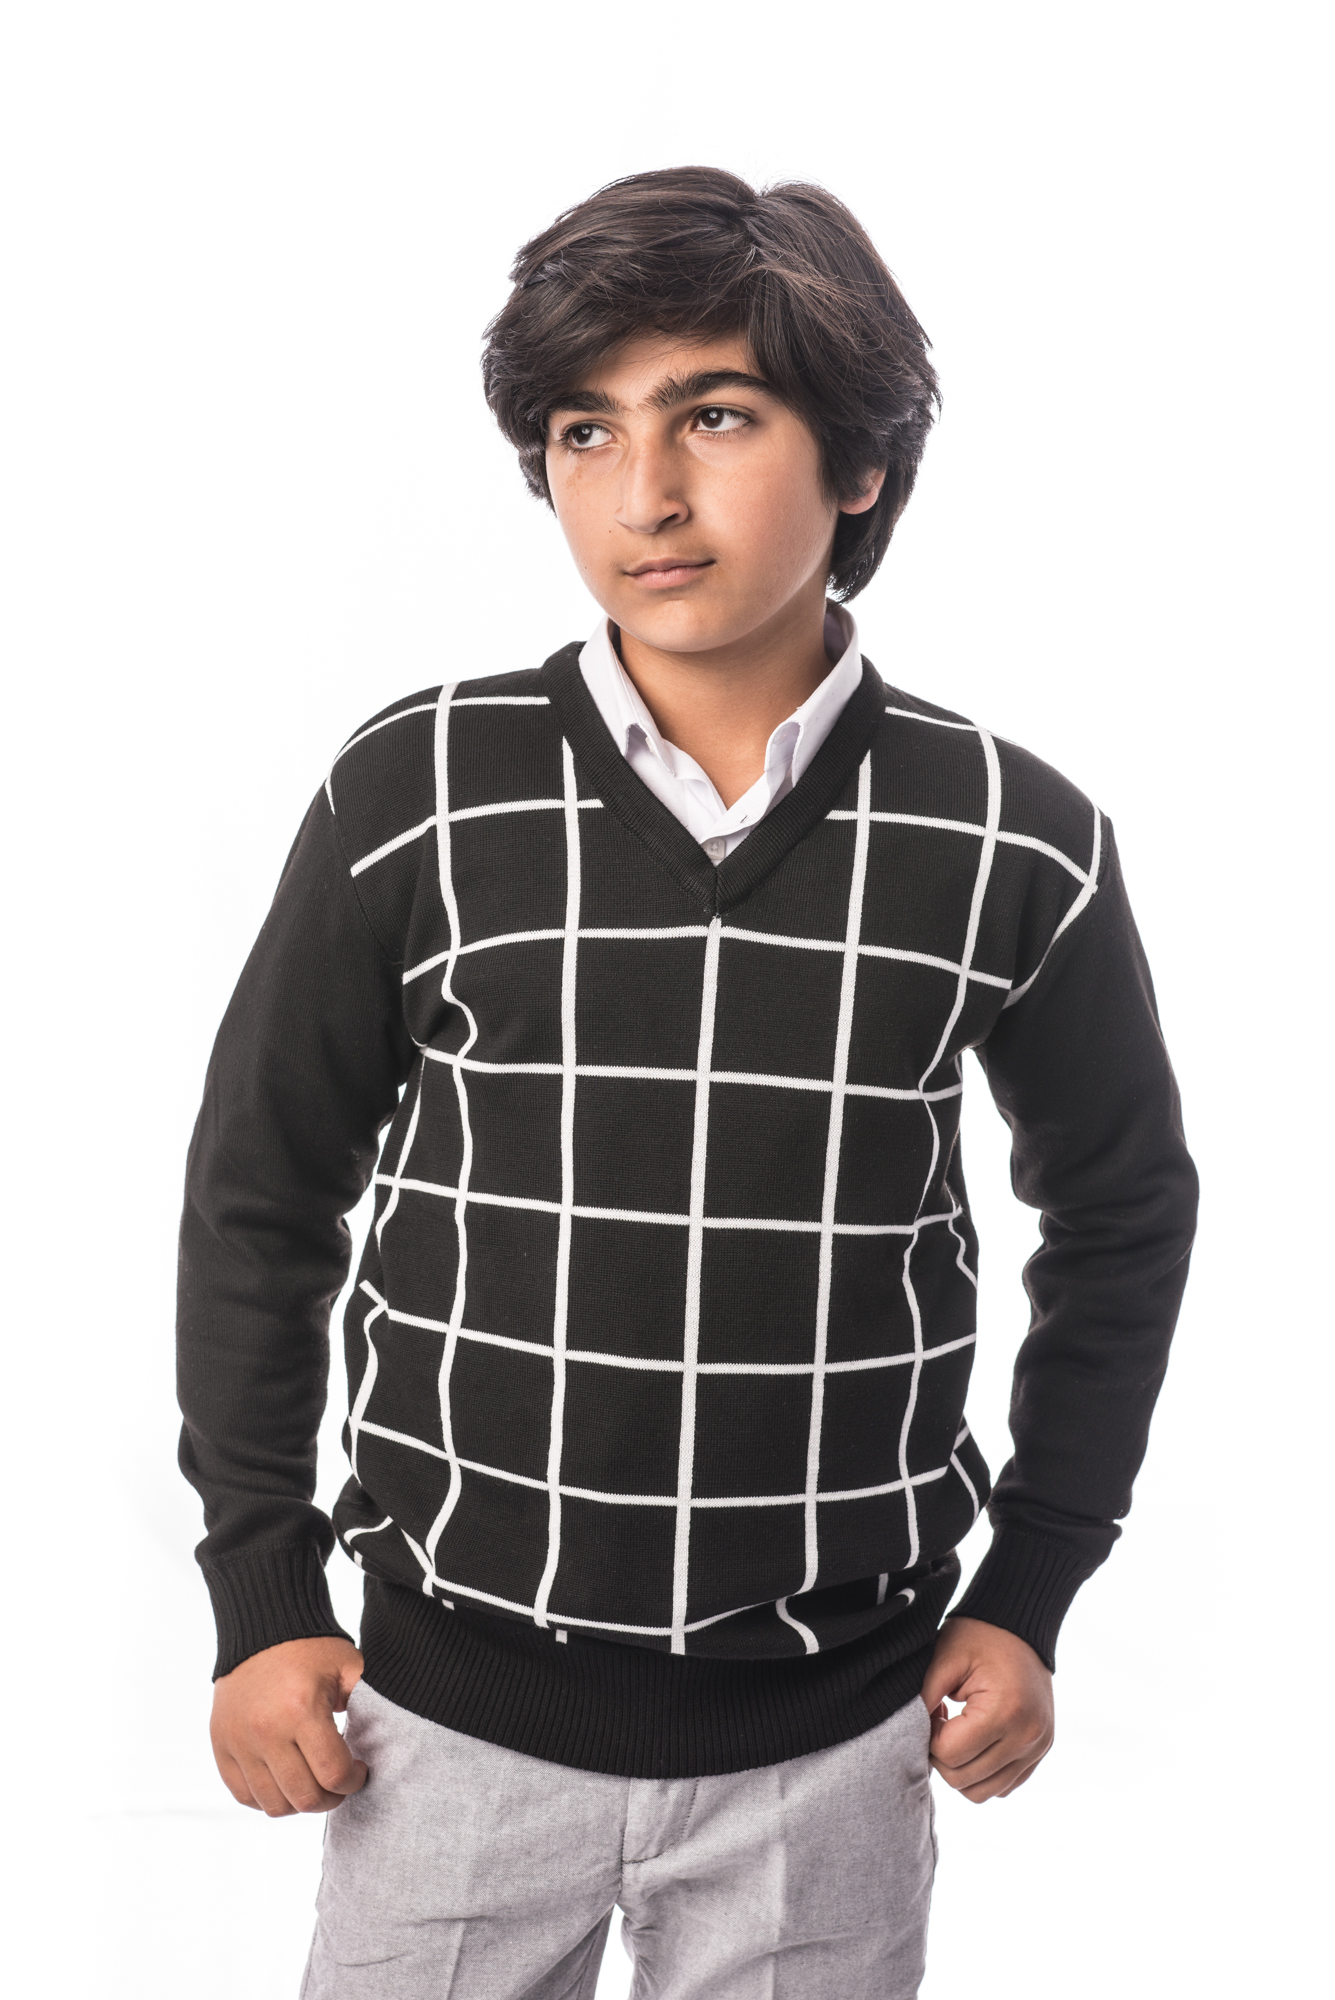 Plaid Boys Sweater EBST1606B